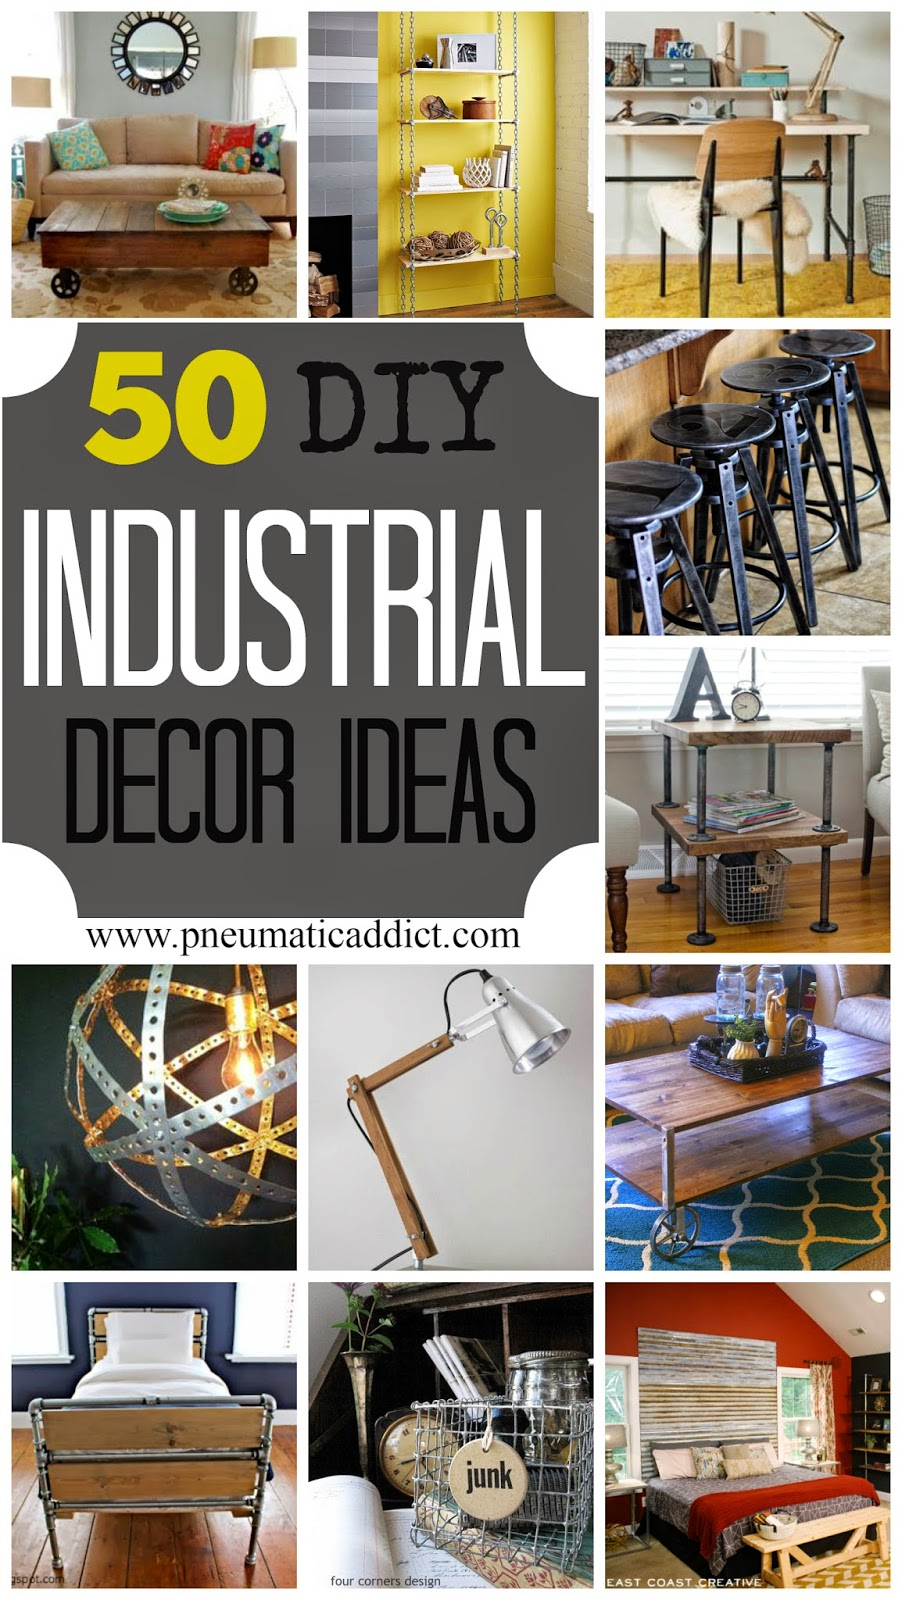 50 Diy Industrial Decor Ideas on rustic industrial dresser